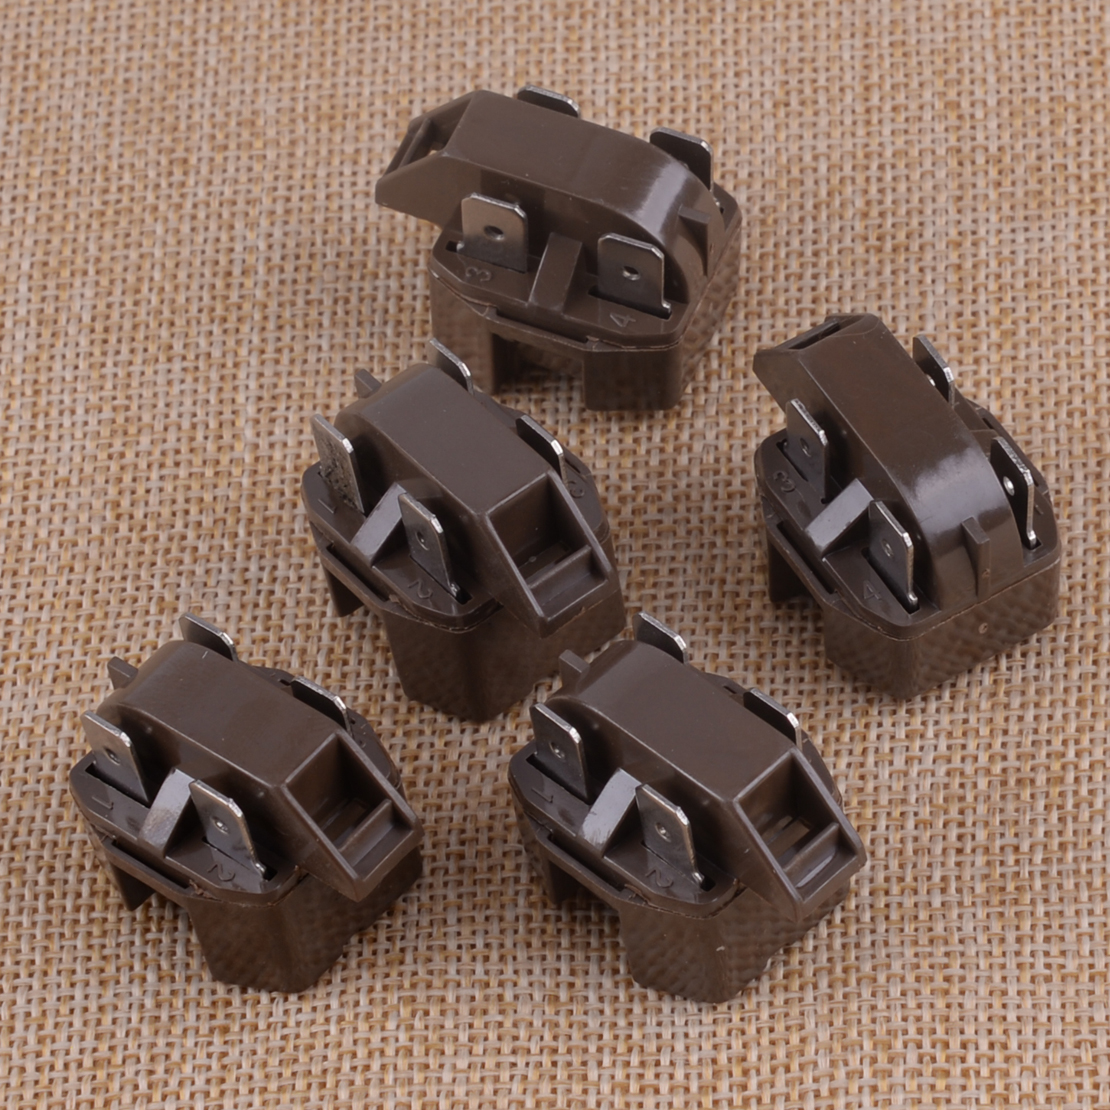 5pcs PTC 4 Pin Start Relay IC-4 Fit For Refrigerator Freezer Compressor Appliance Parts 2262185